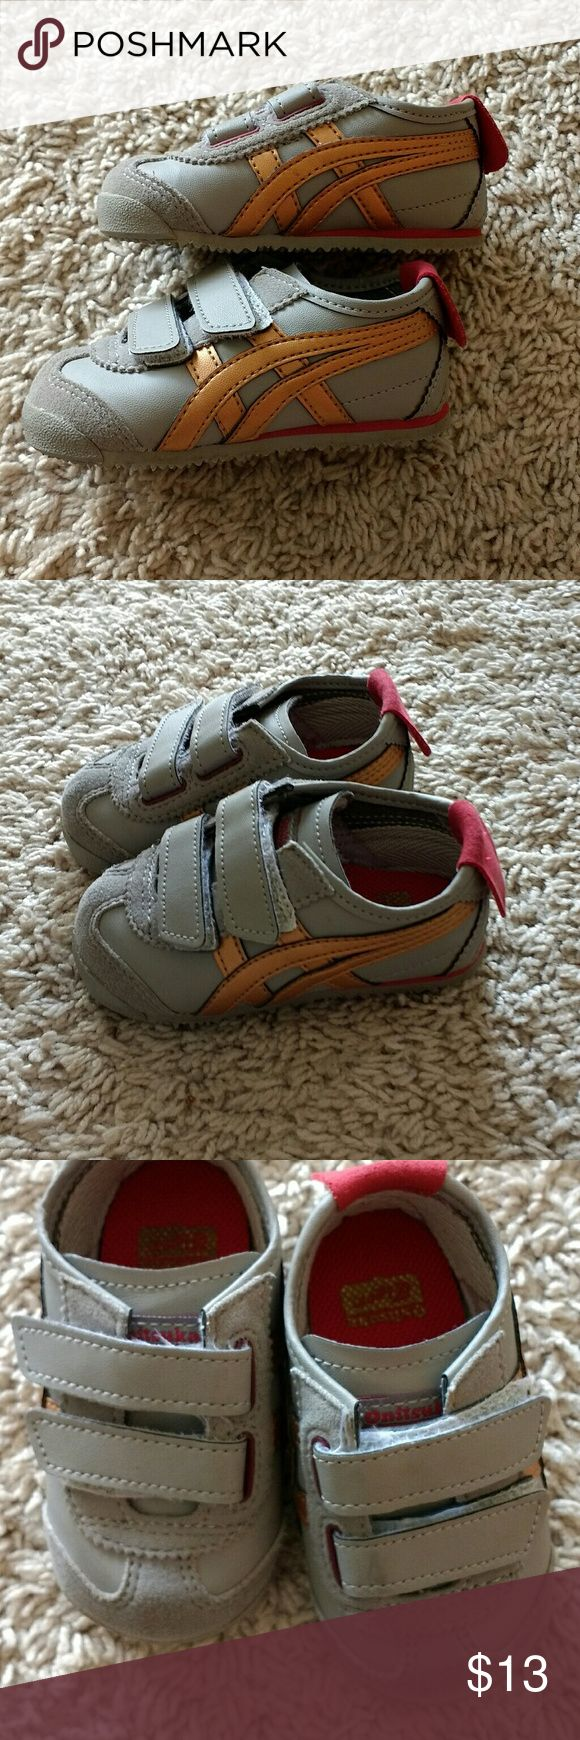 Onitsuka Tiger sneakers sz K4 Grey Onitsuka Tiger toddler sneakers with bronze and red colors Size K4 Velcro fastening Very little wear, great condition Onitsuka Tiger Shoes Sneakers